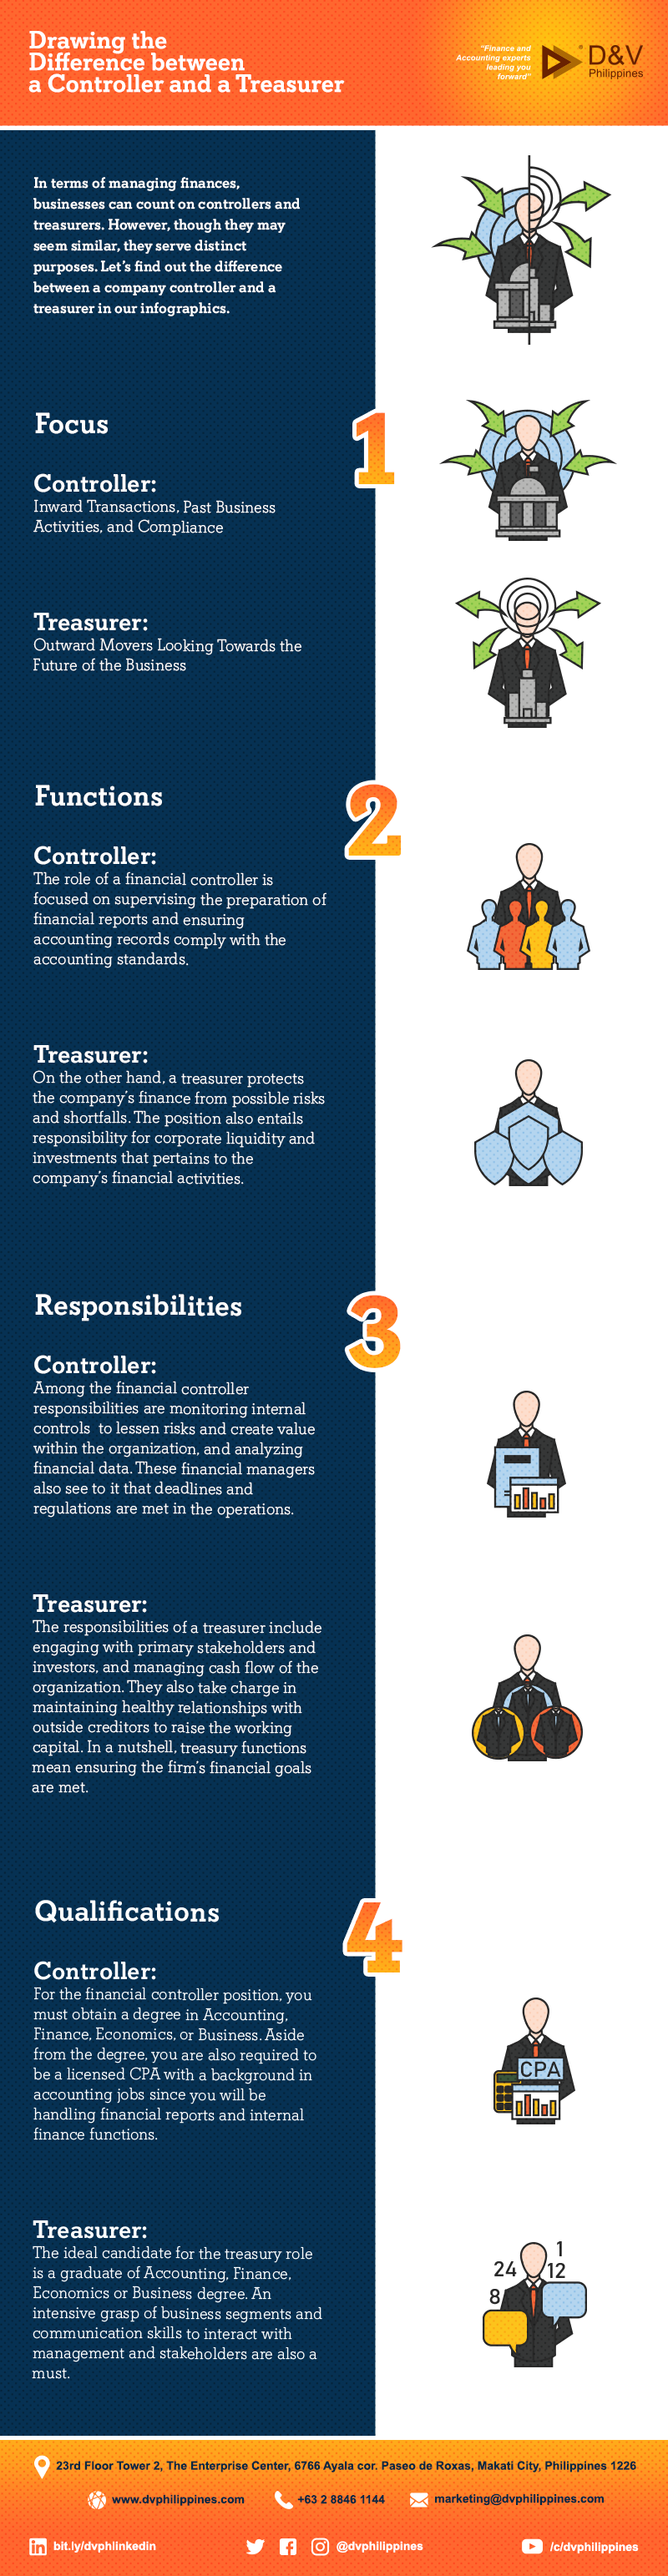 Infograpihcs_Difference-between-a-Controller-and-a-Treasurer_Main